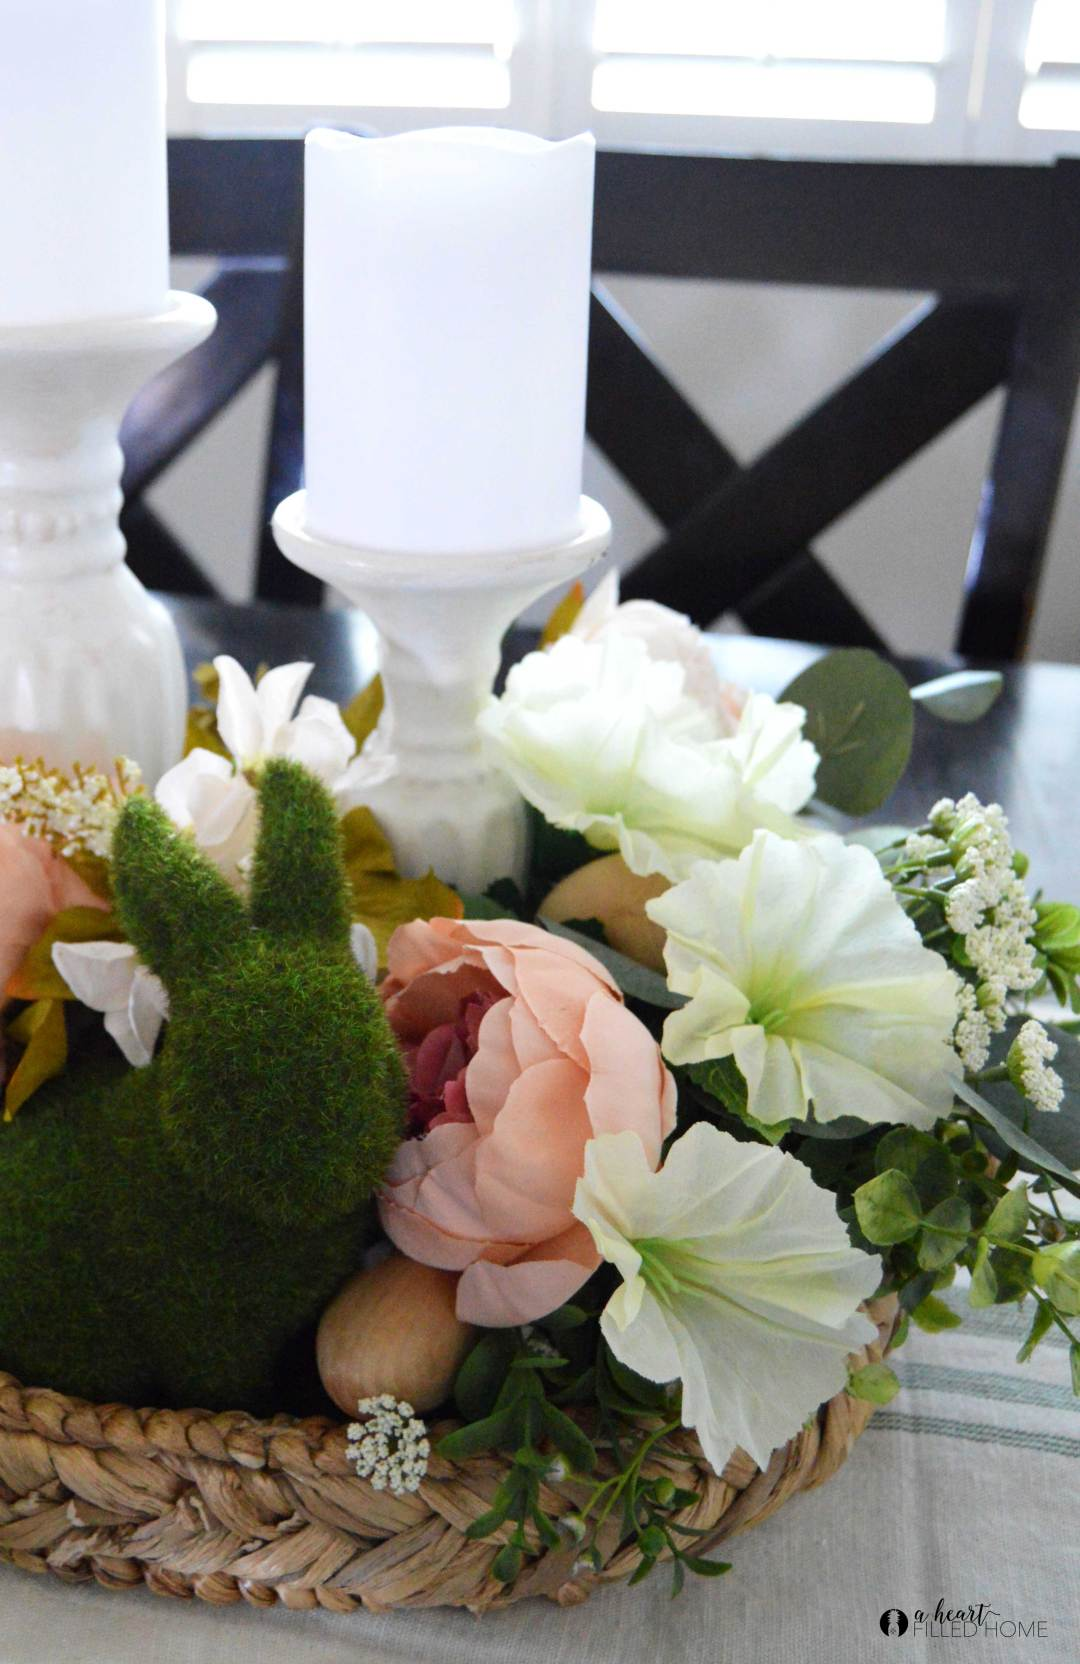 How to create a budget friendly Spring centerpiece! By using neutral decor and artificial flowers from Dollar Tree I was able to create this beautiful centerpiece on a budget!